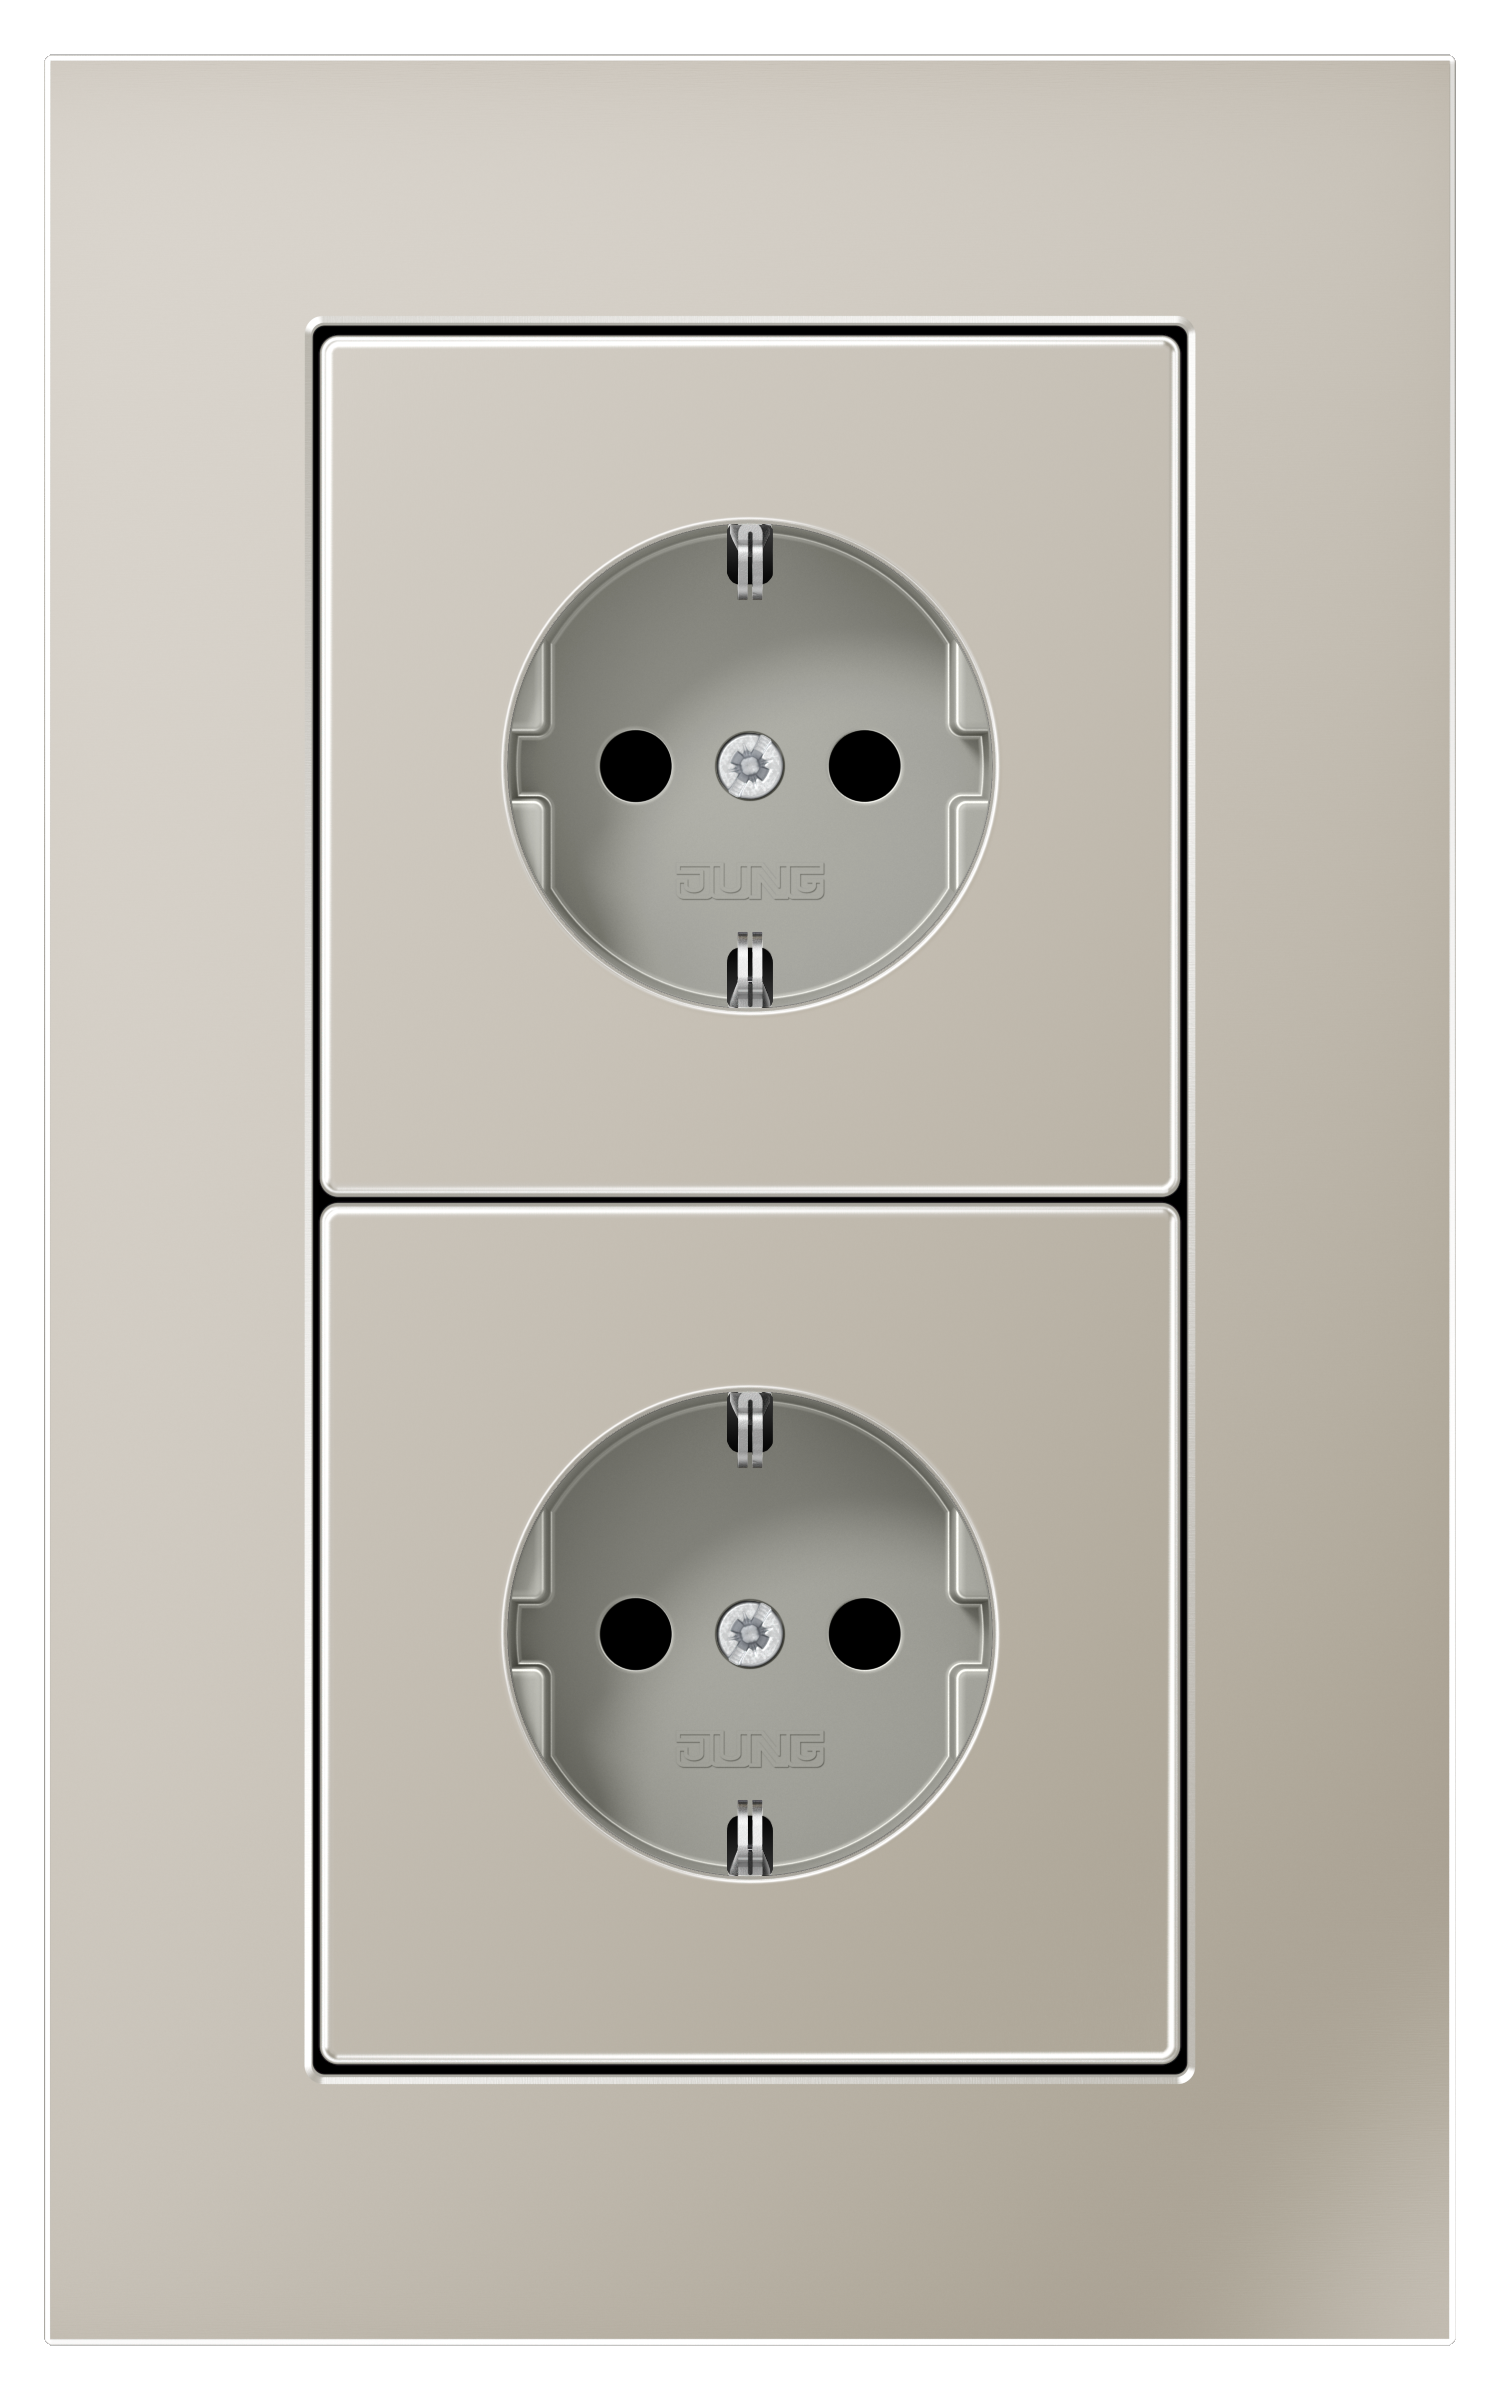 JUNG_LS_plus_stainless-steel_socket-socket